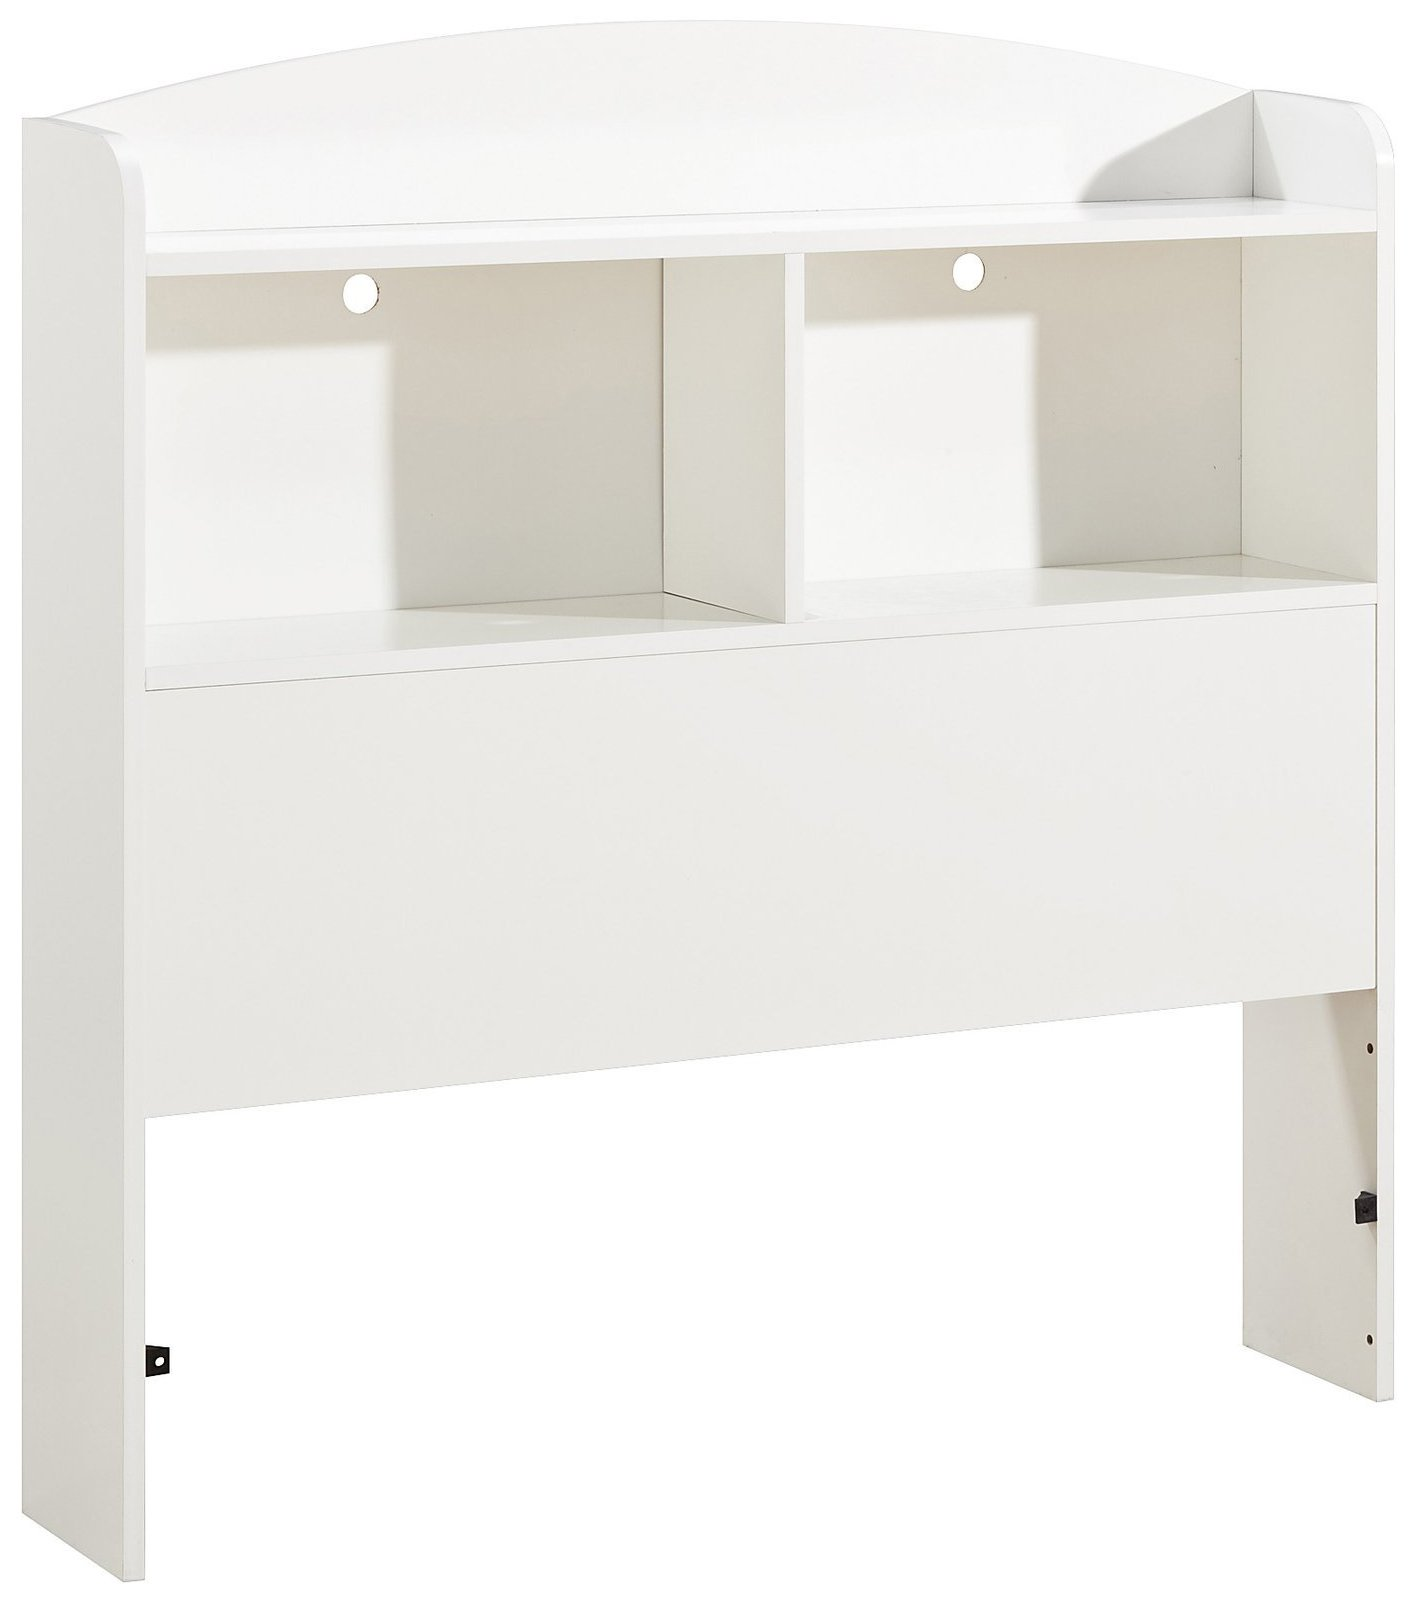 South Shore Logik Bookcase Headboard with Storage, Twin 39-inch, White by South Shore